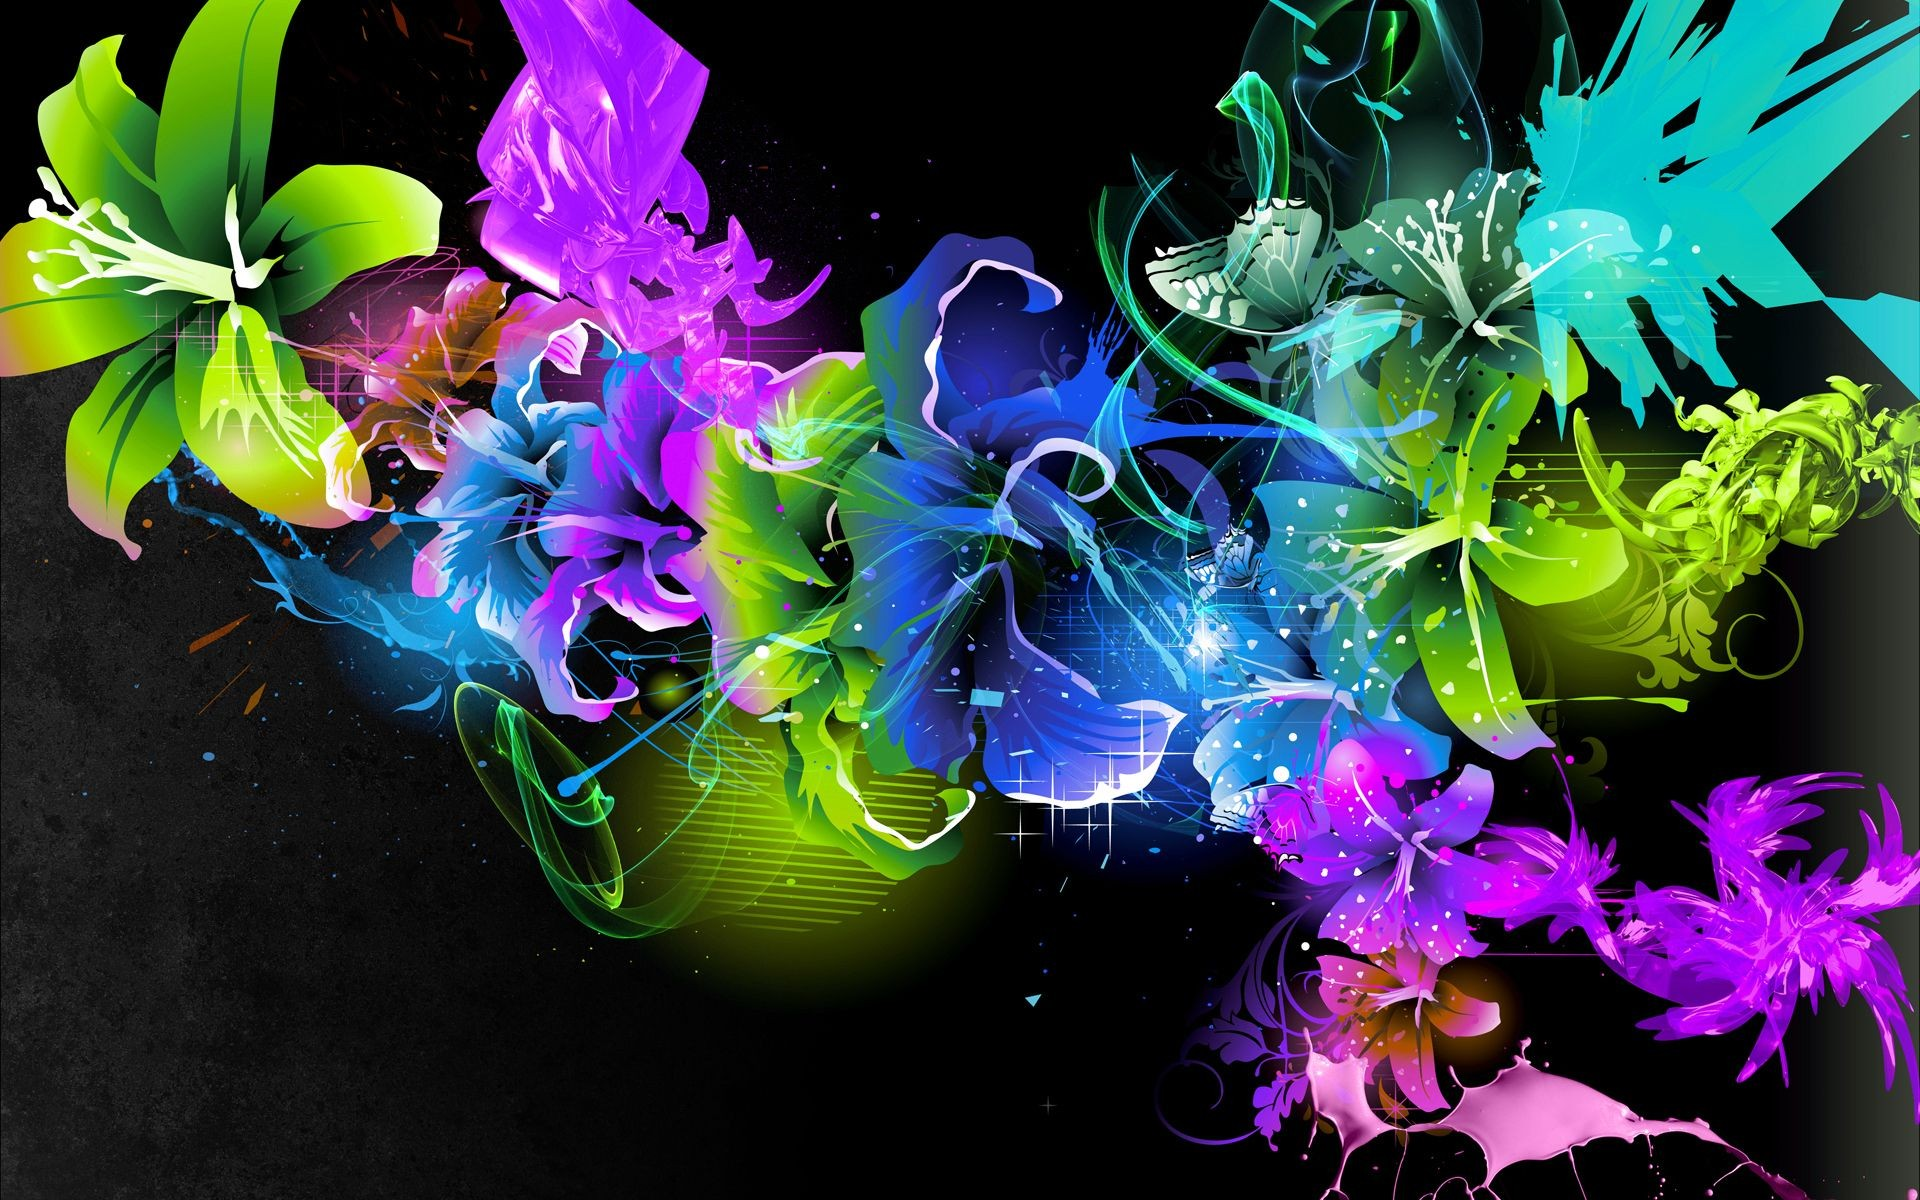 Color Abstract Wallpaper HD Wallpaper 1920x1200